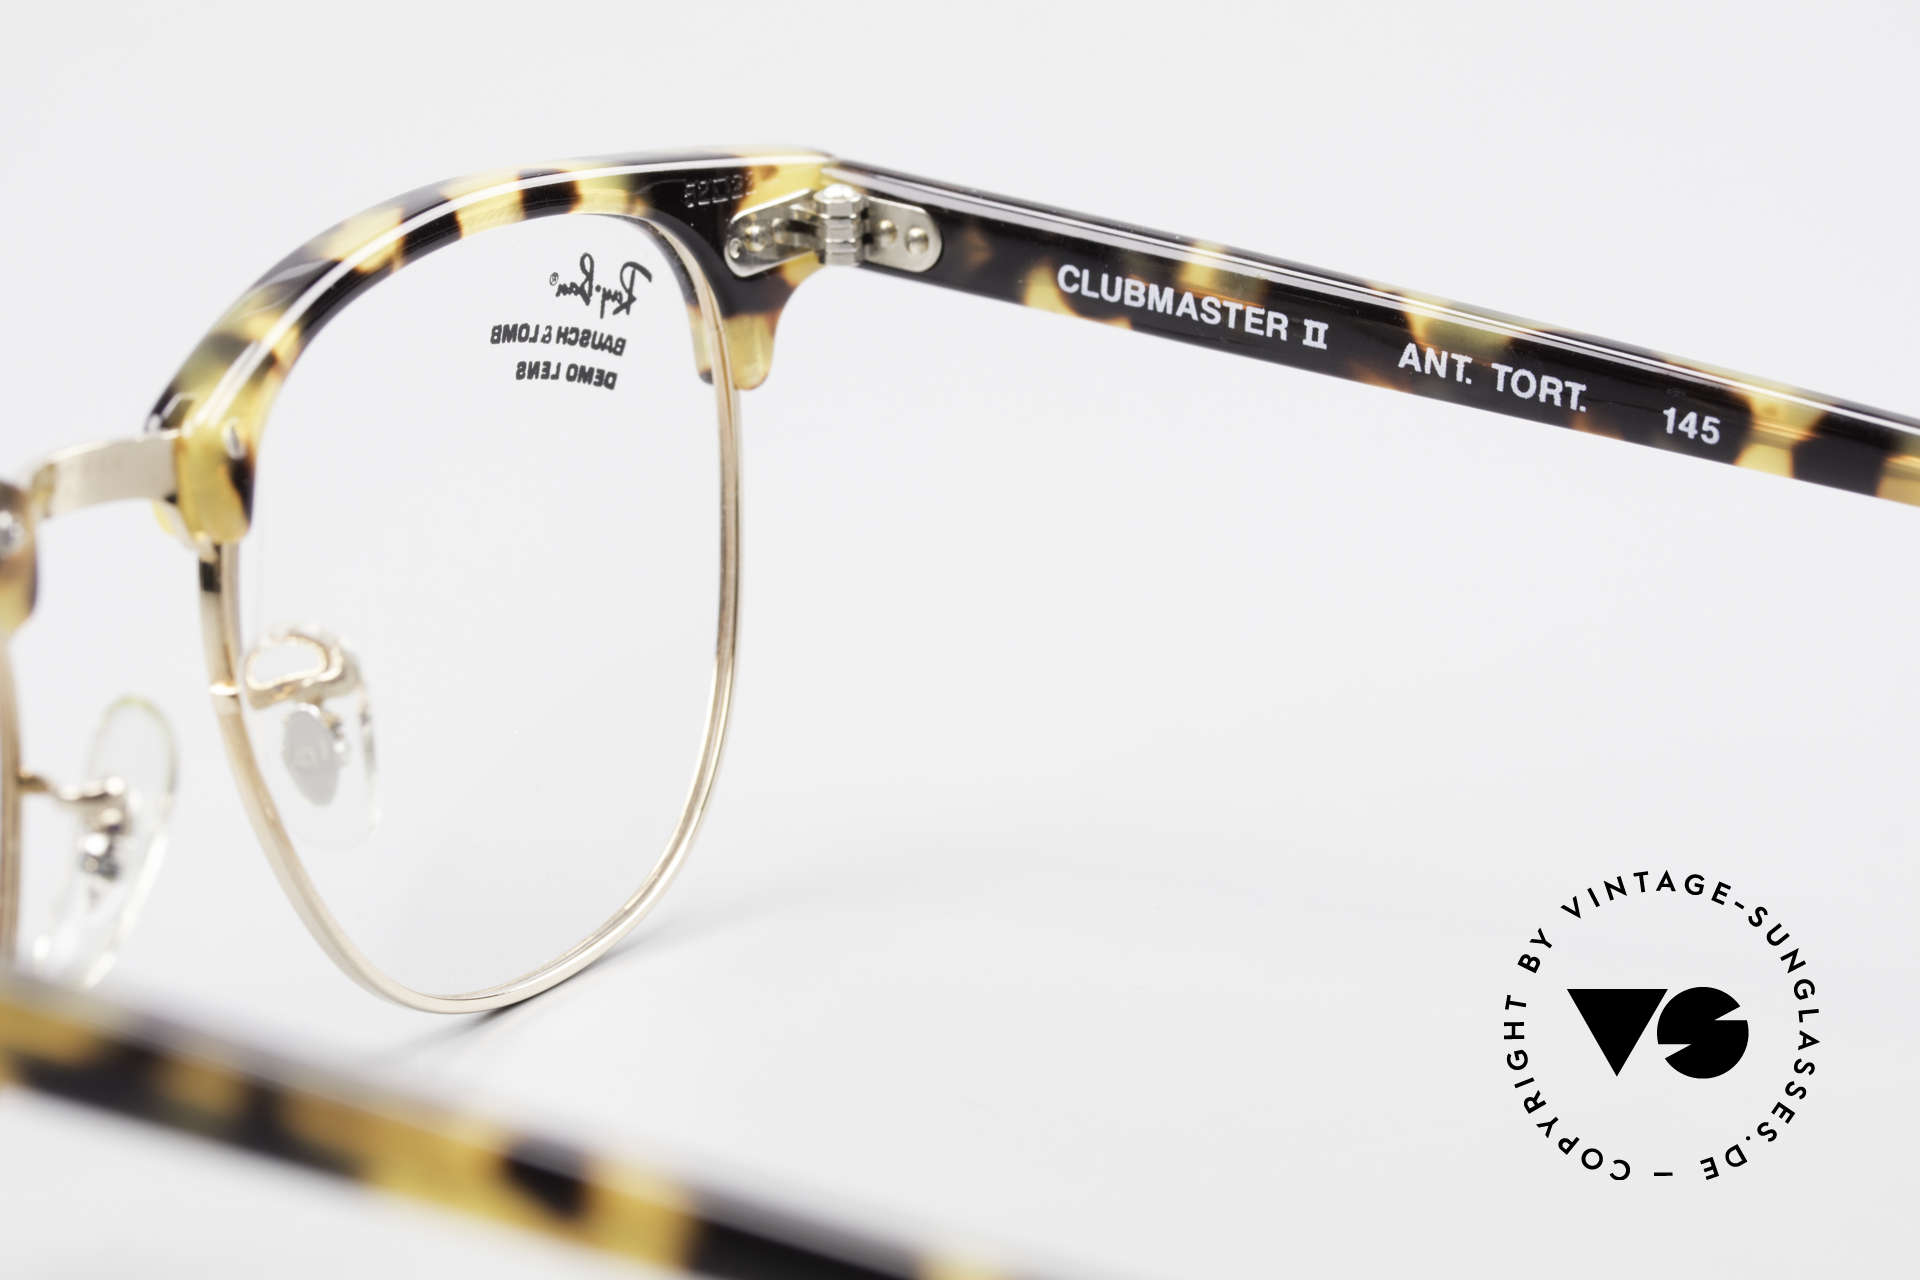 Ray Ban Clubmaster II Large Limited Edition USA B&L, NO retro frame, but a 25 years old B&L original, Made for Men